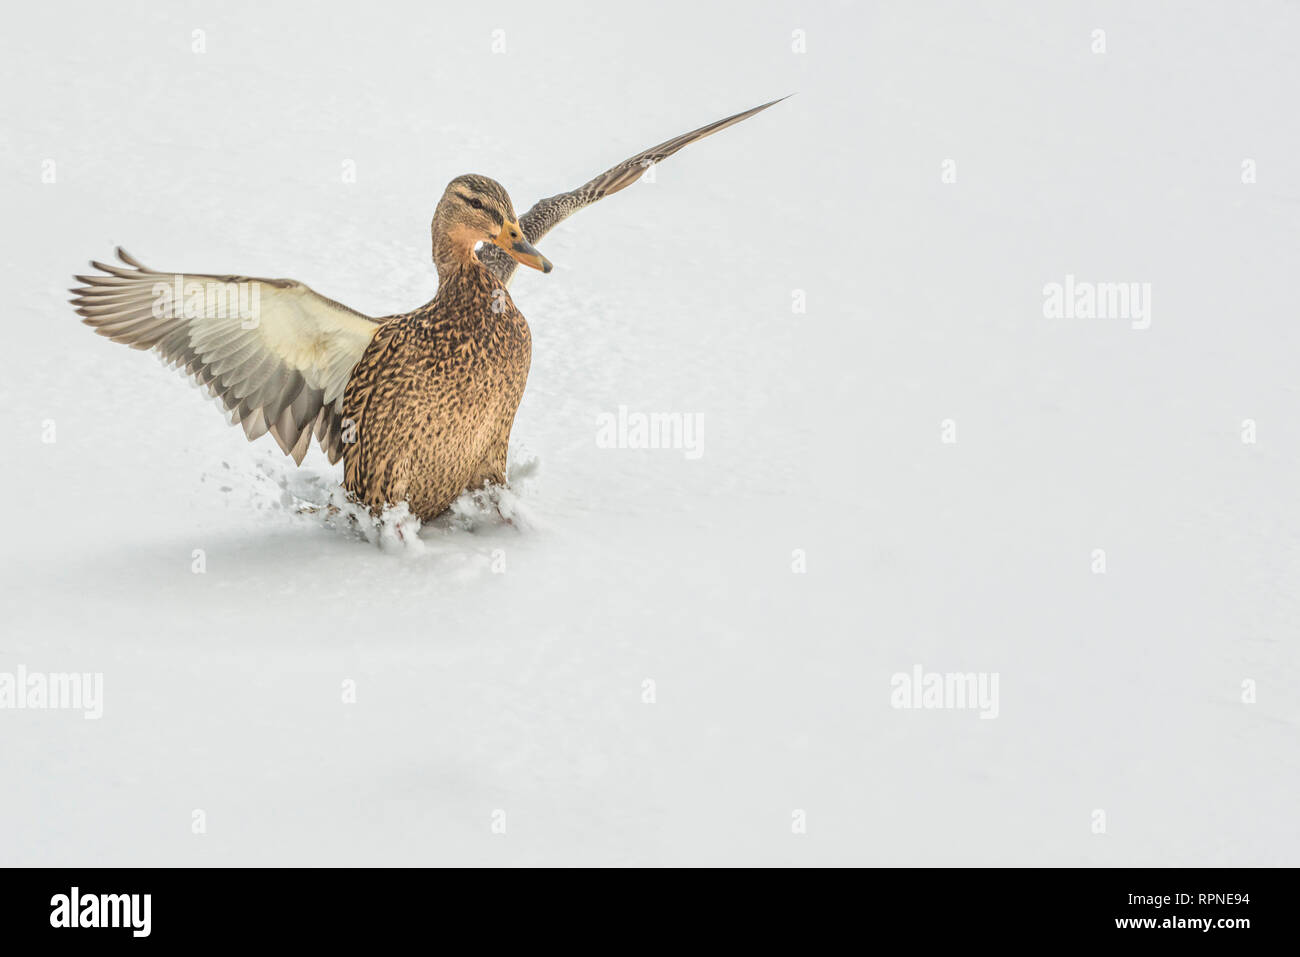 zoology / animals, avian / bird (aves), Mallard (Anas platyrhynchos) hen landing on frozen lake surfac, Additional-Rights-Clearance-Info-Not-Available - Stock Image